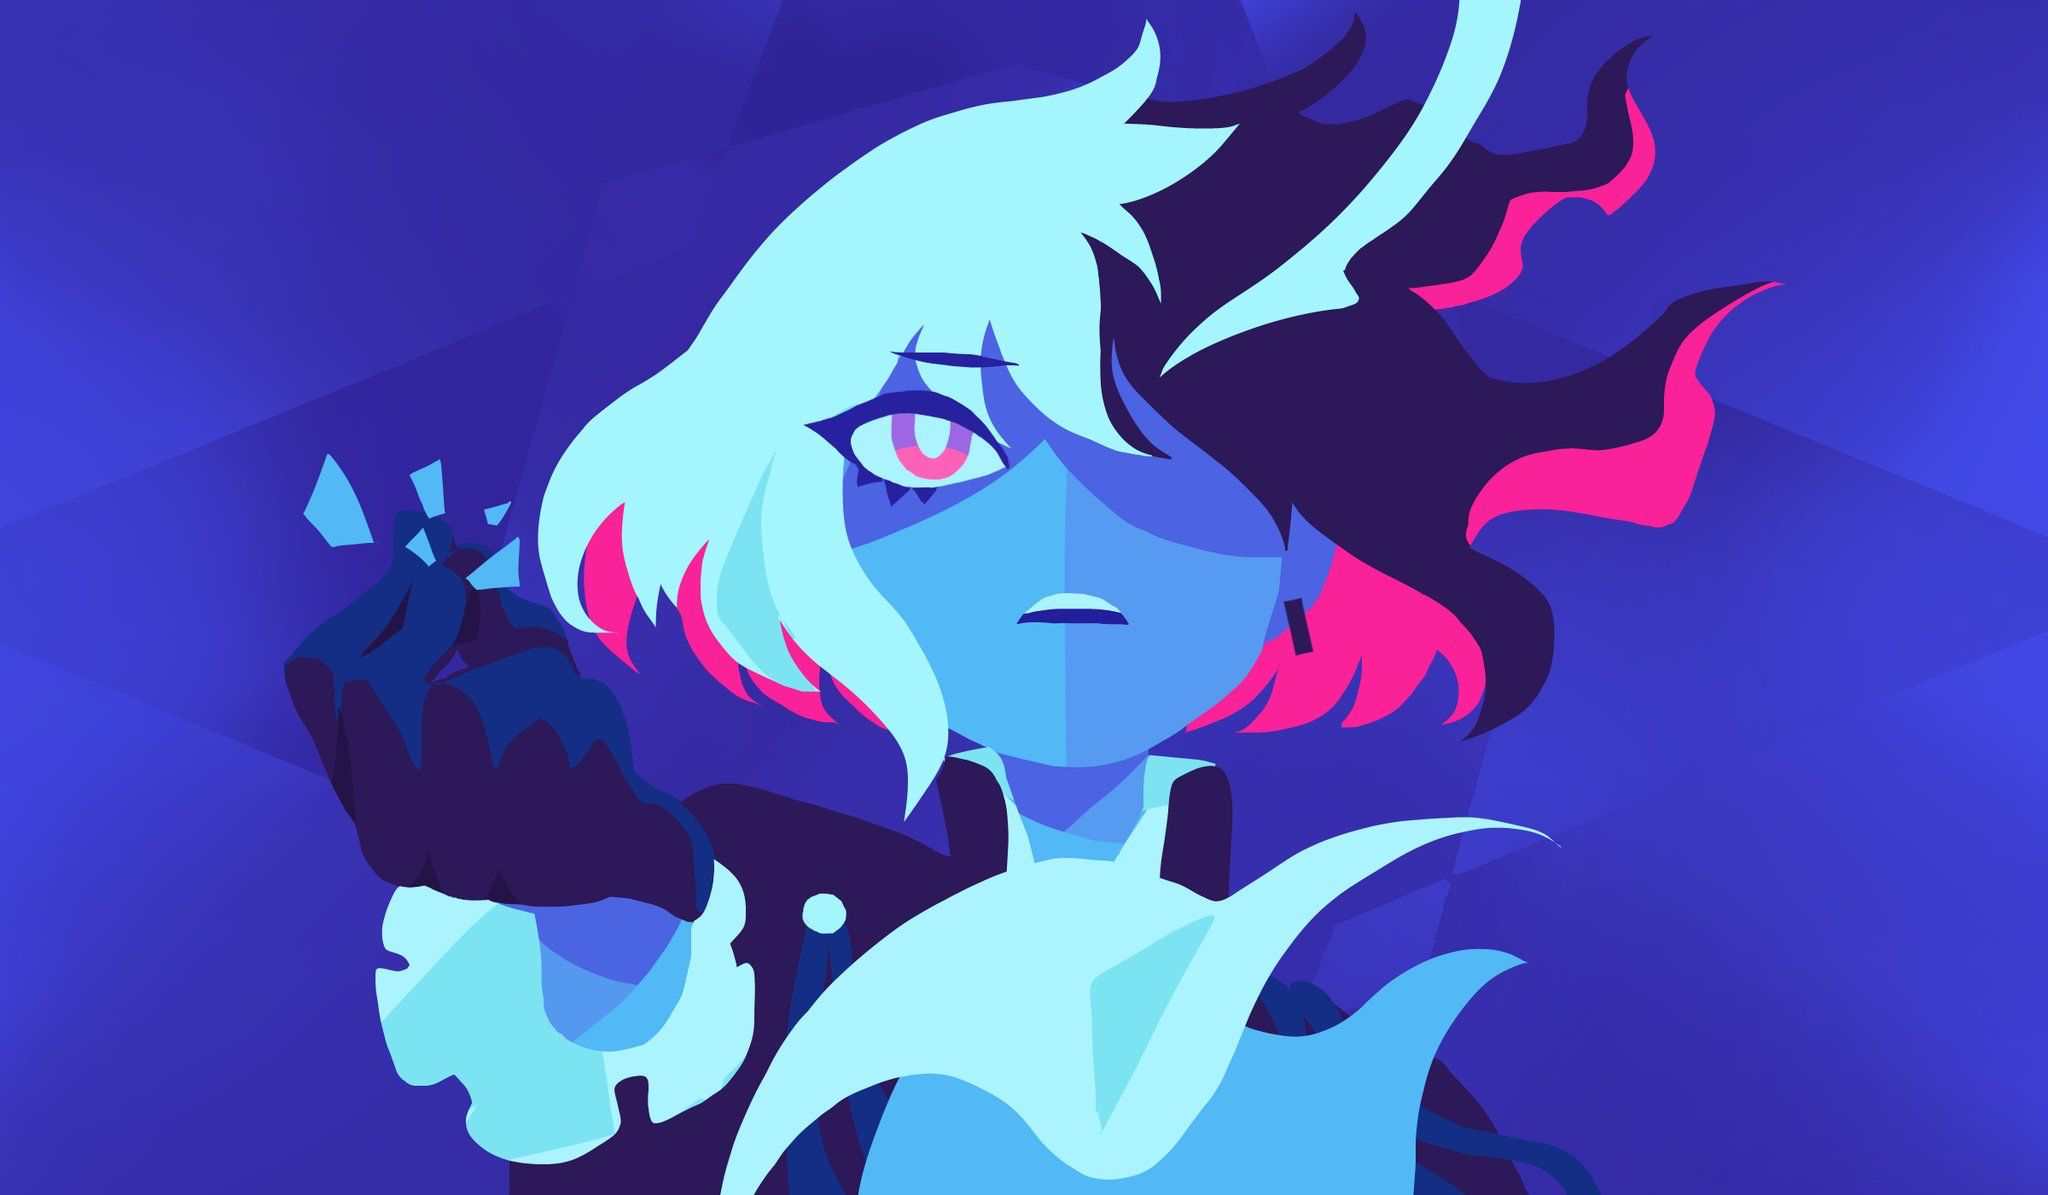 Pin By Pppc On Promare In 2020 Anime Anime Eyes Anime Furry